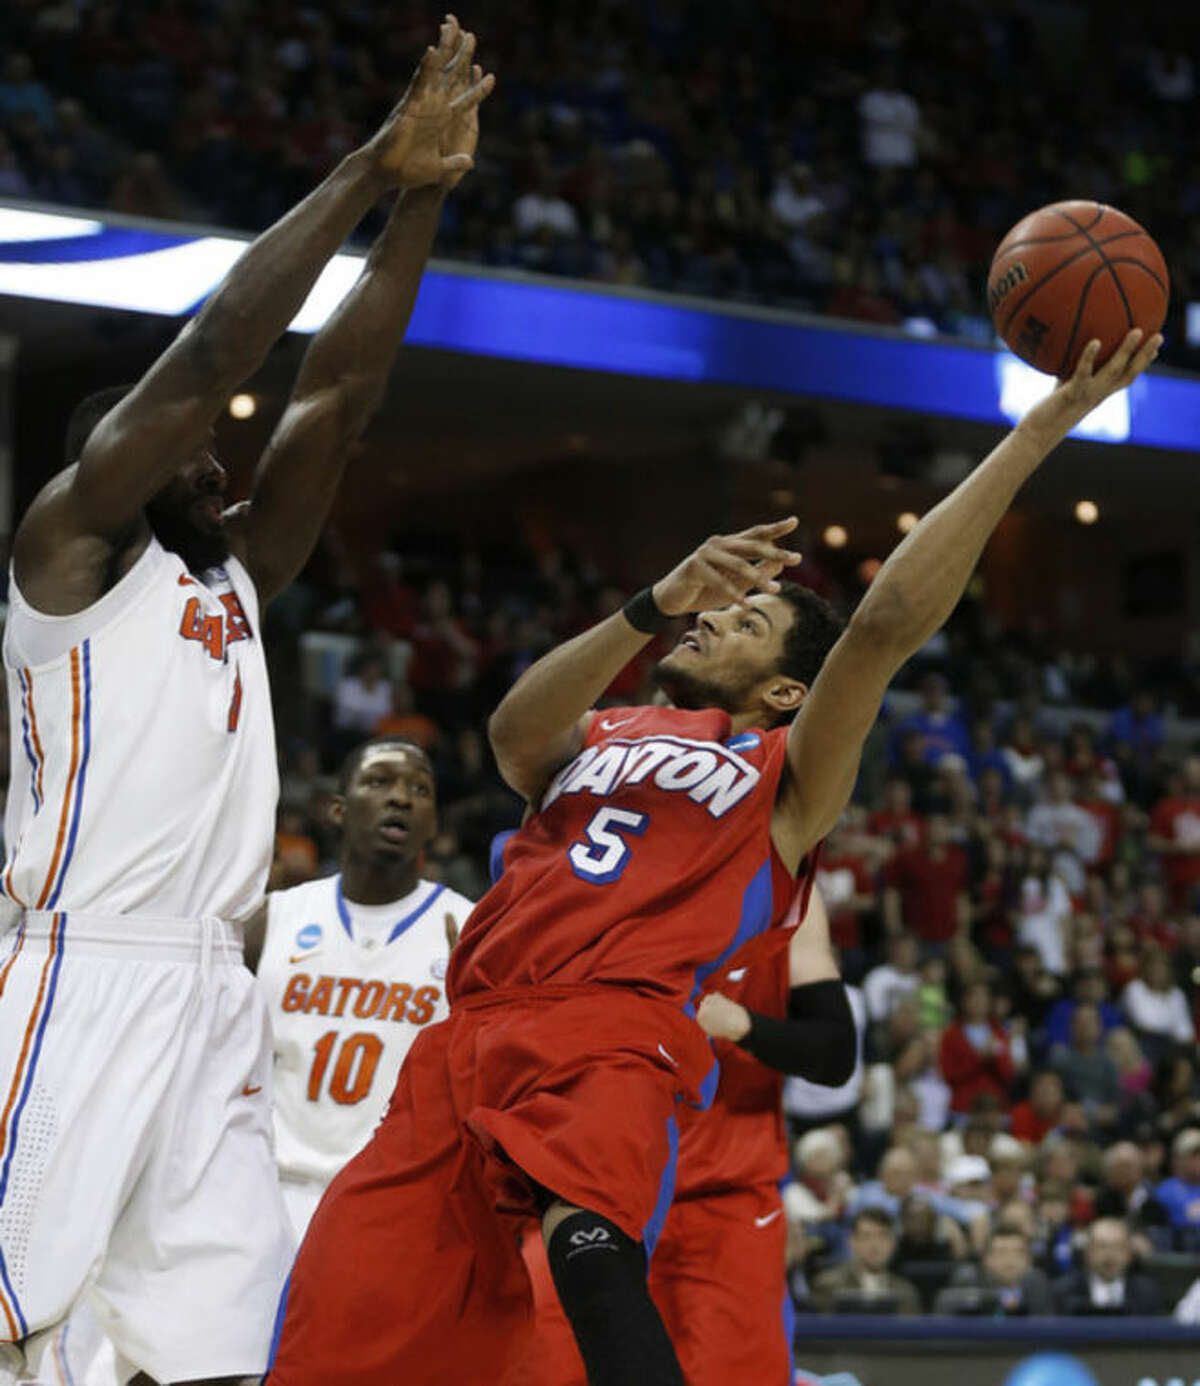 Dayton forward Devin Oliver (5) shoots against Florida center Patric Young (4) during the first half in a regional final game at the NCAA college basketball tournament, Saturday, March 29, 2014, in Memphis, Tenn. (AP Photo/John Bazemore)